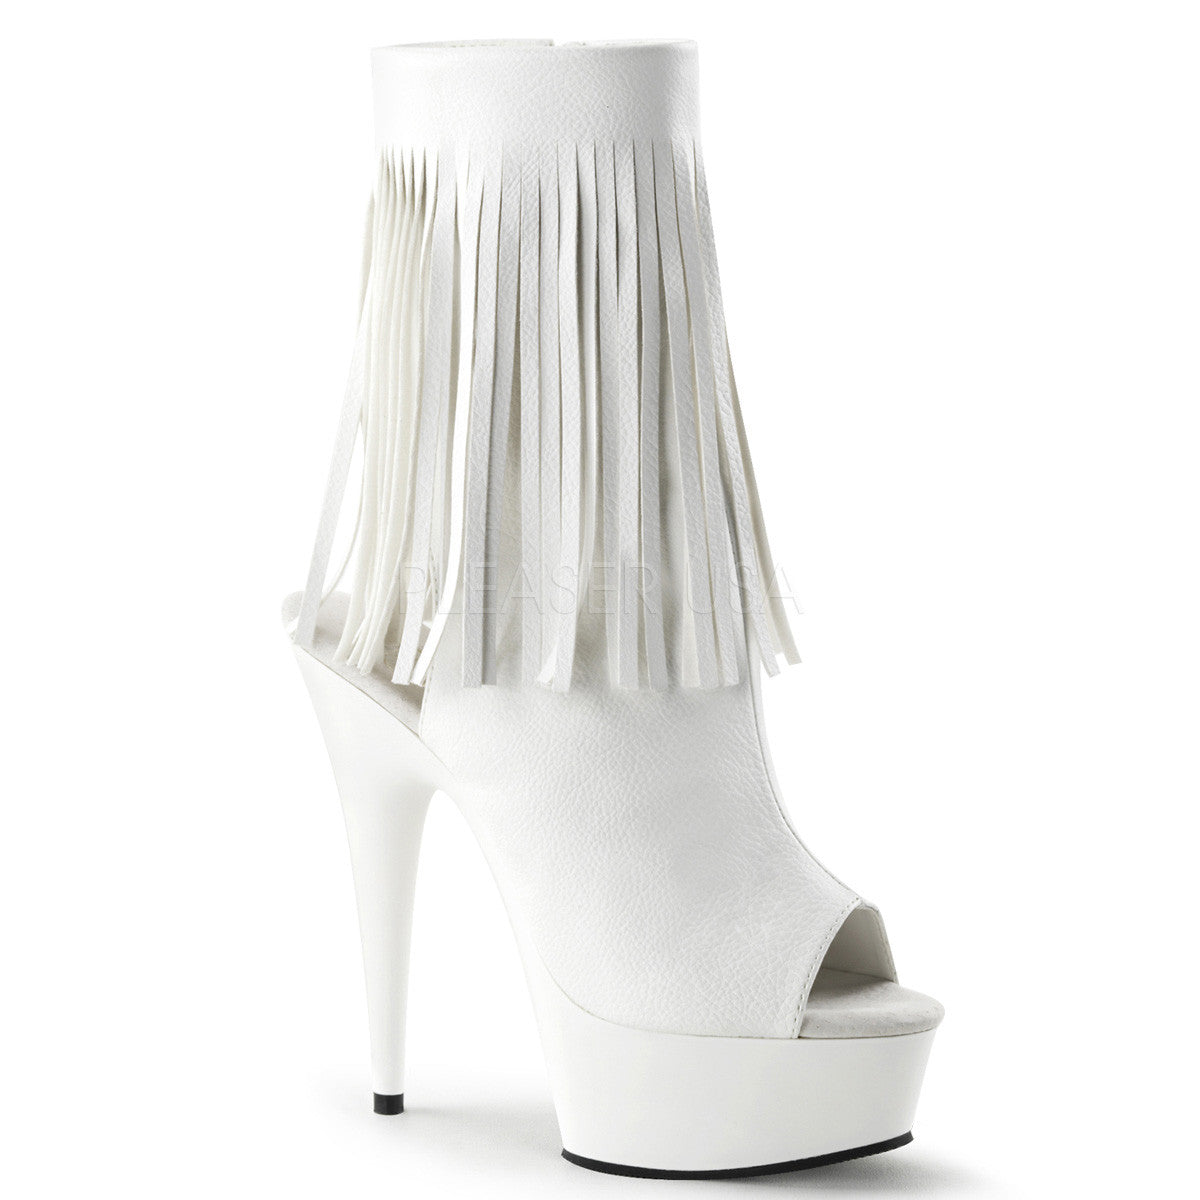 Pleaser DELIGHT-1019 White Pu Open Toe Ankle Boots - Shoecup.com